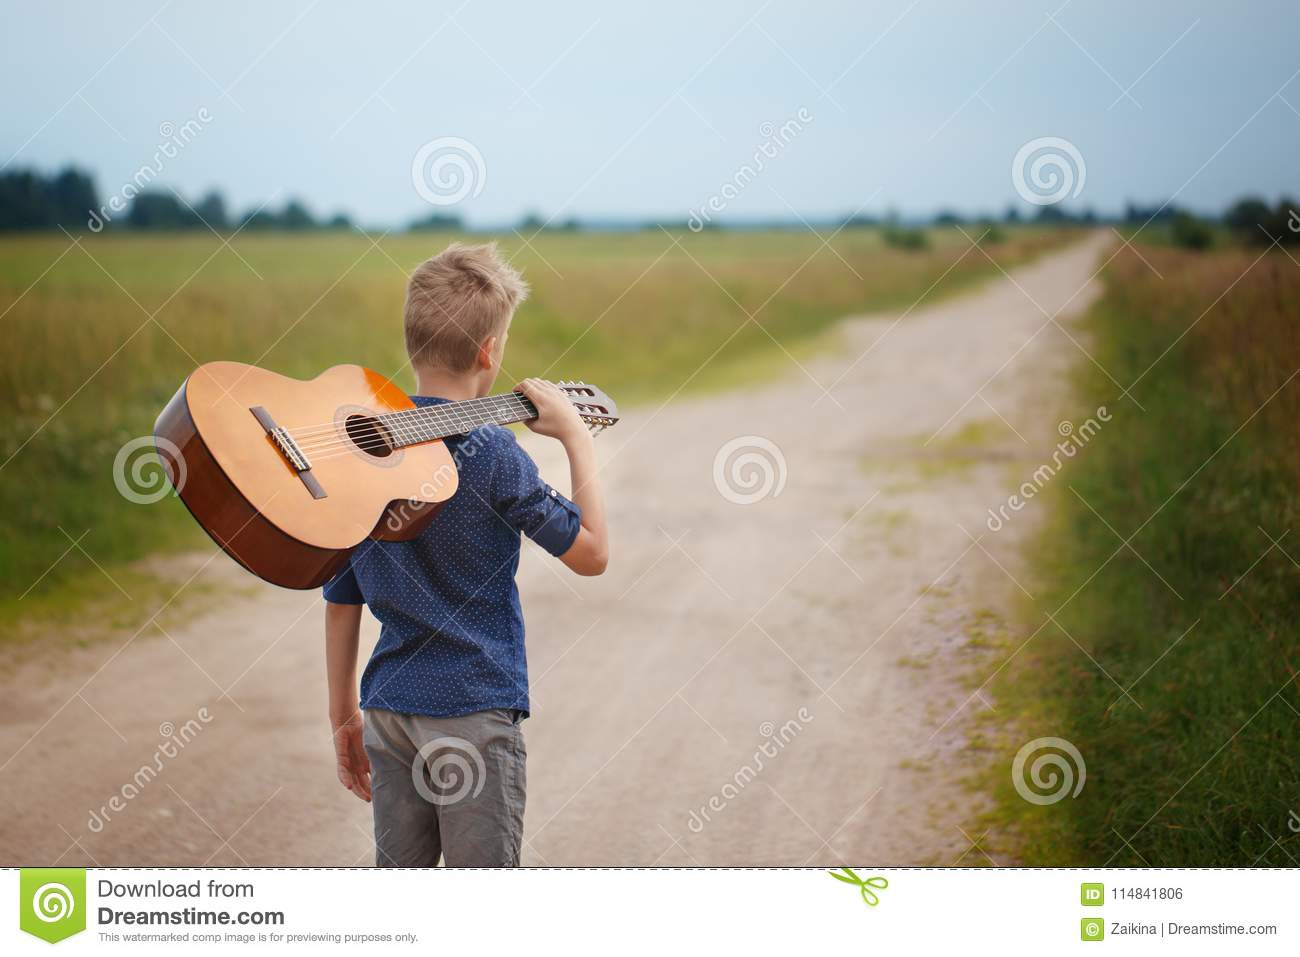 521b1d396 Handsome boy with guitar walking on the road in summer day. Back view